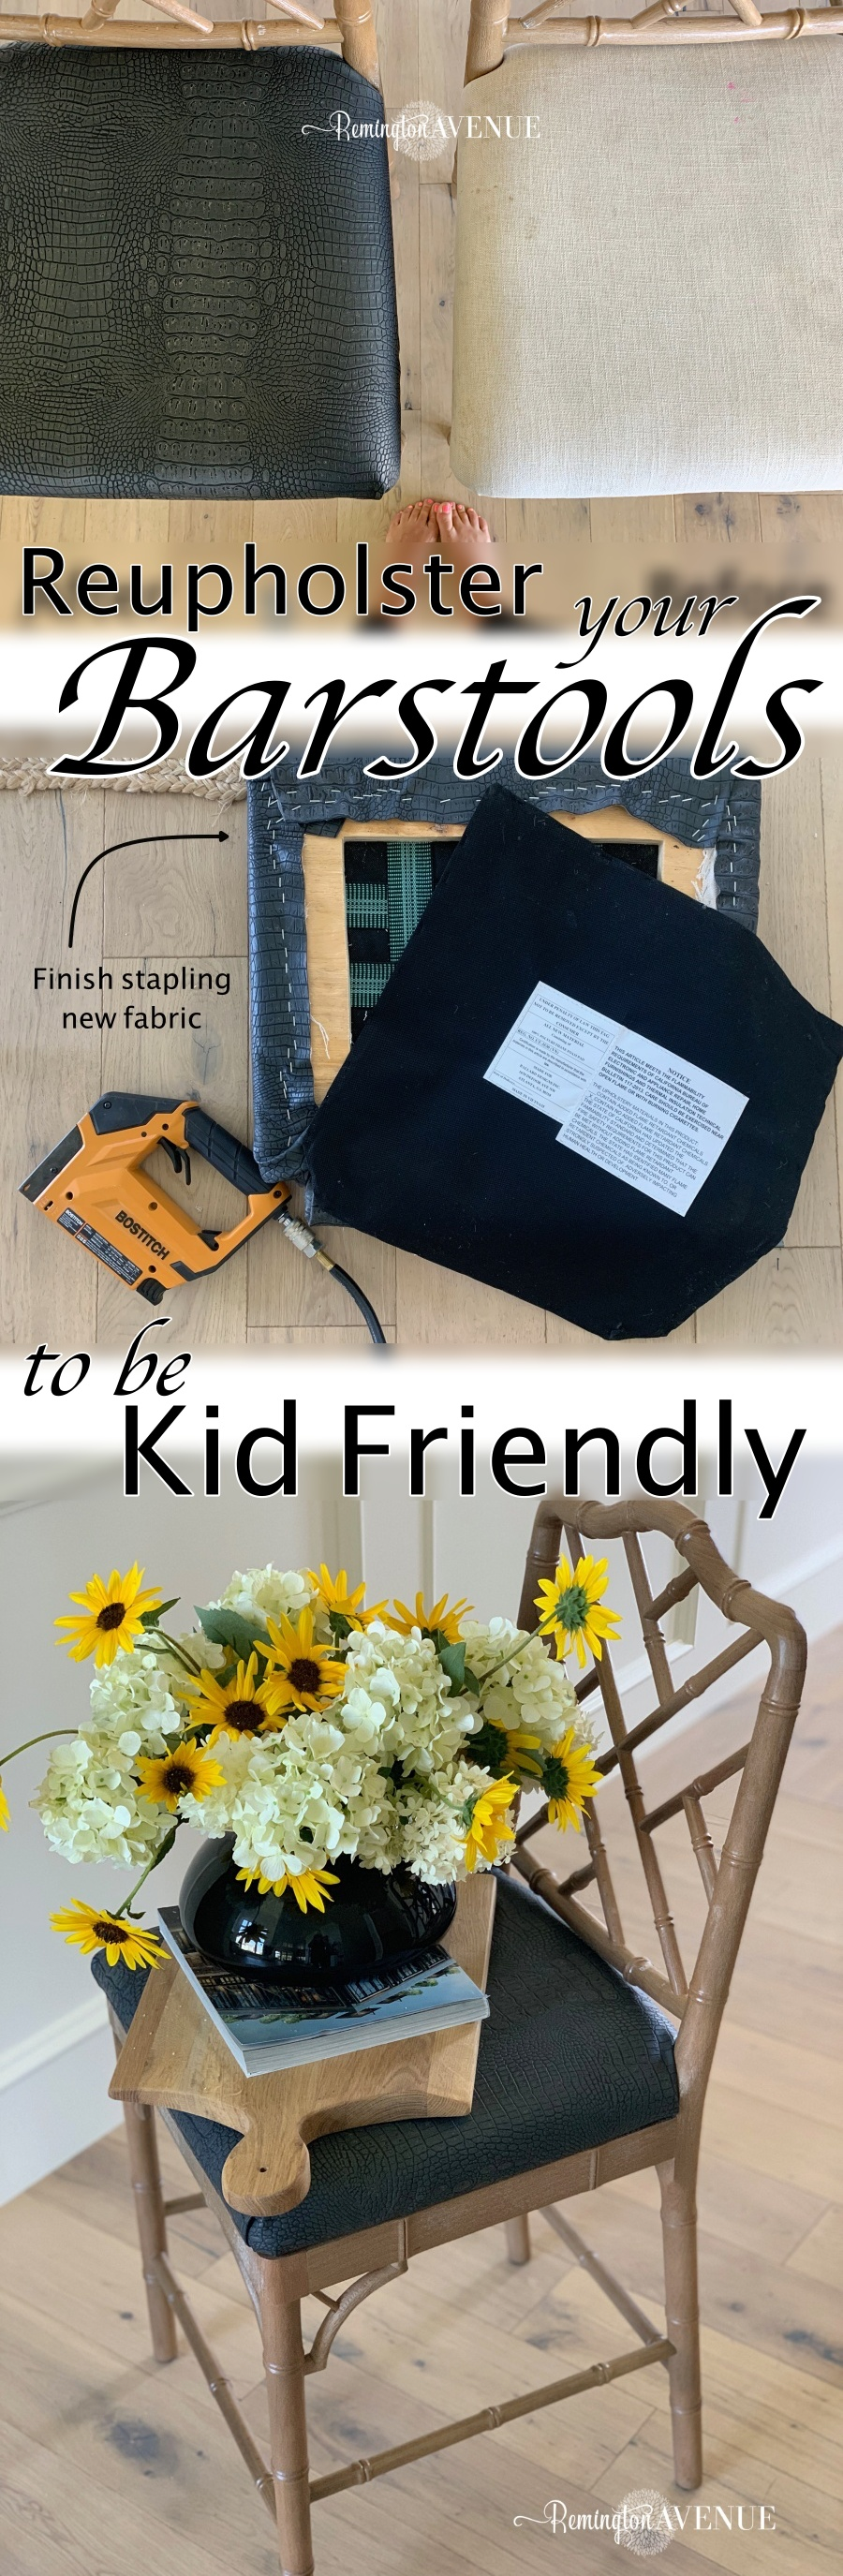 how to reupholster your barstools to be kid friendly